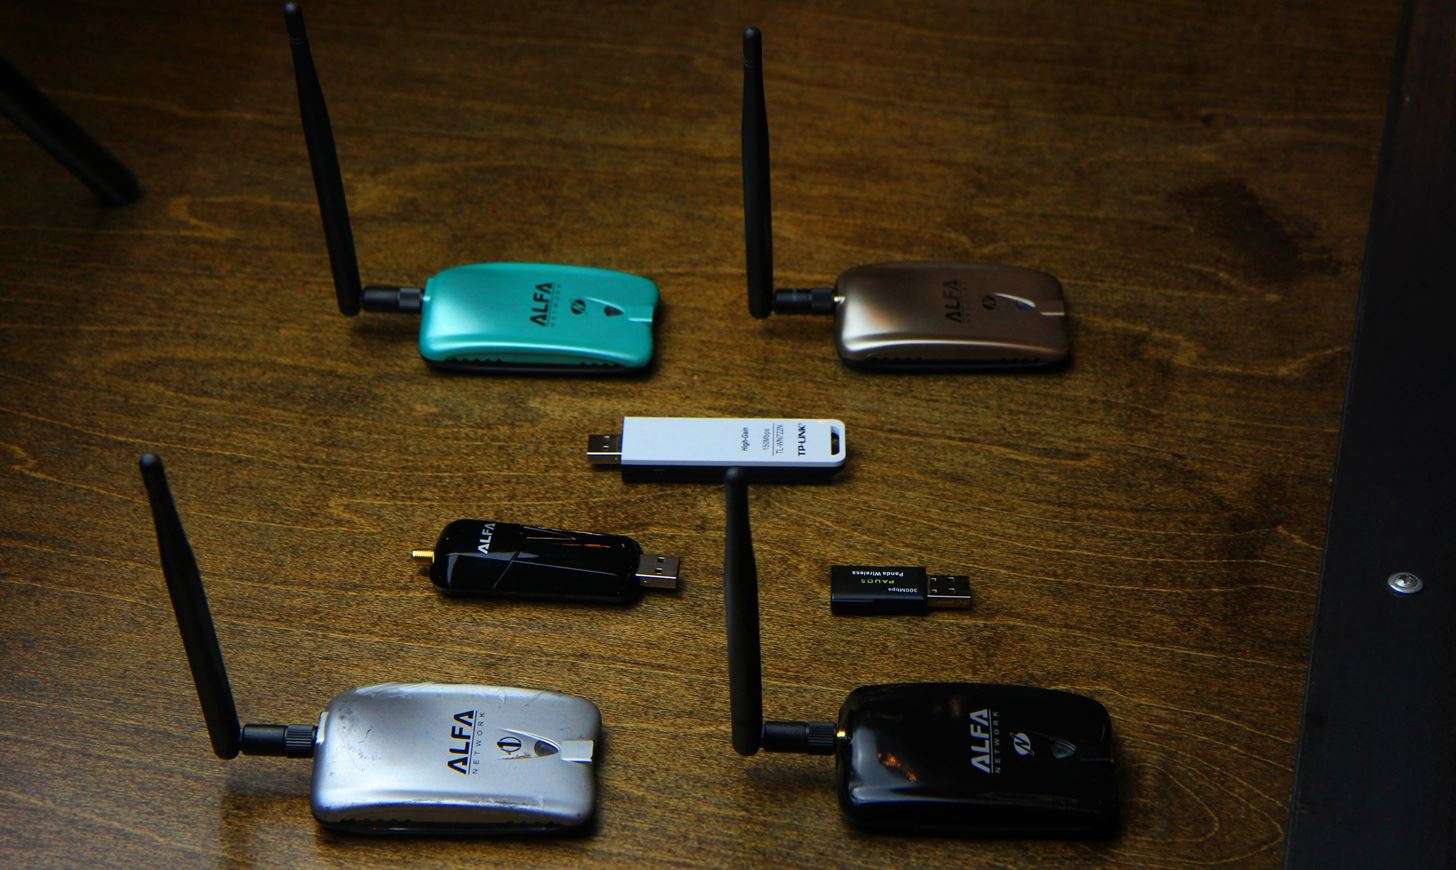 How to Hack WPA WiFi Passwords by Cracking the WPS PIN